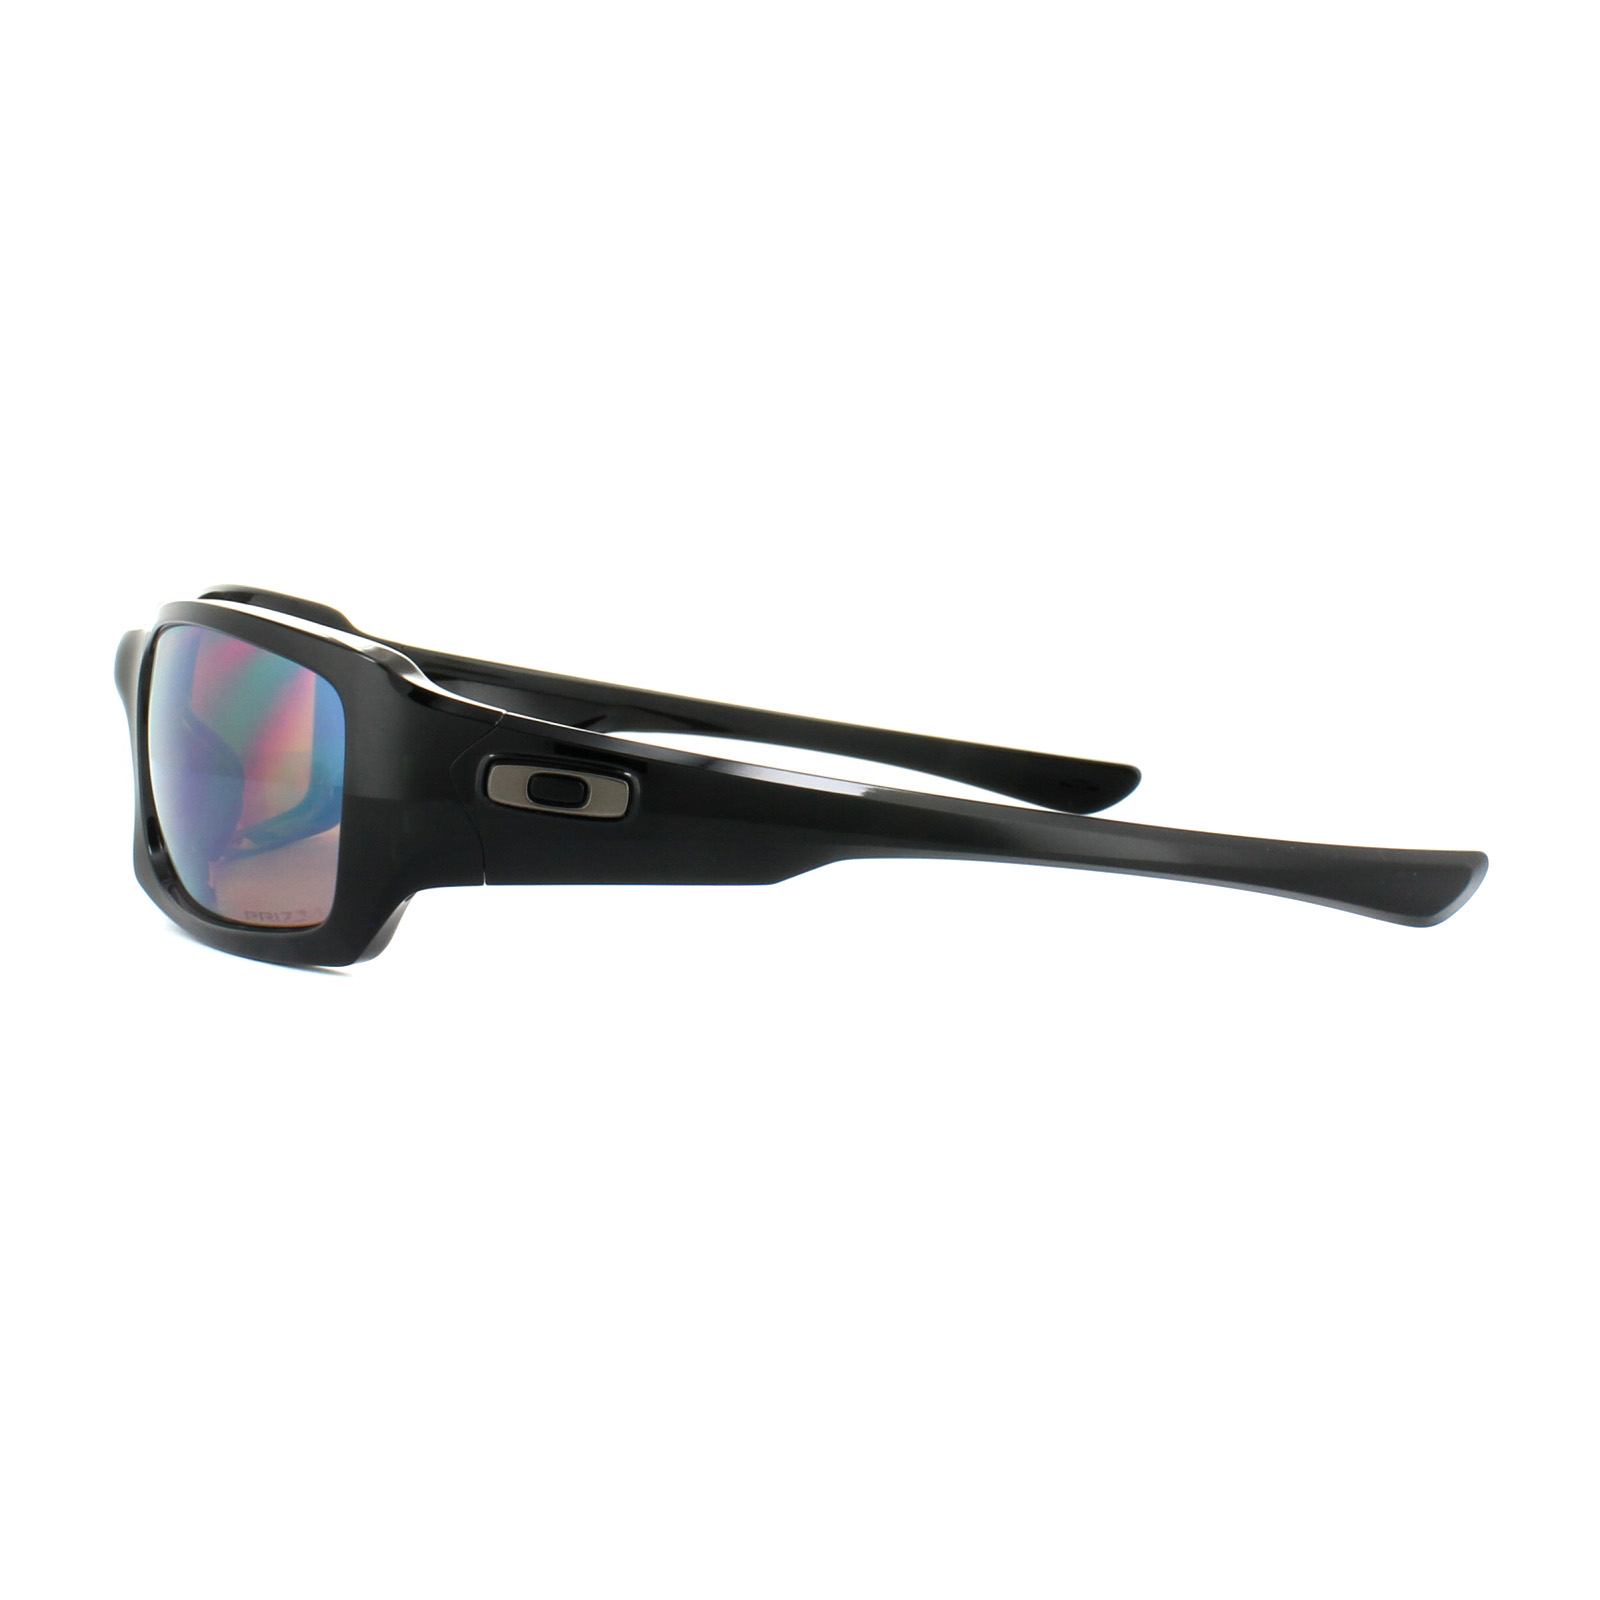 d08cd343c28ef Sentinel Thumbnail 3. Sentinel Oakley Sunglasses Fives Squared OO9238-18  Black Prizm Shallow Water Polarized